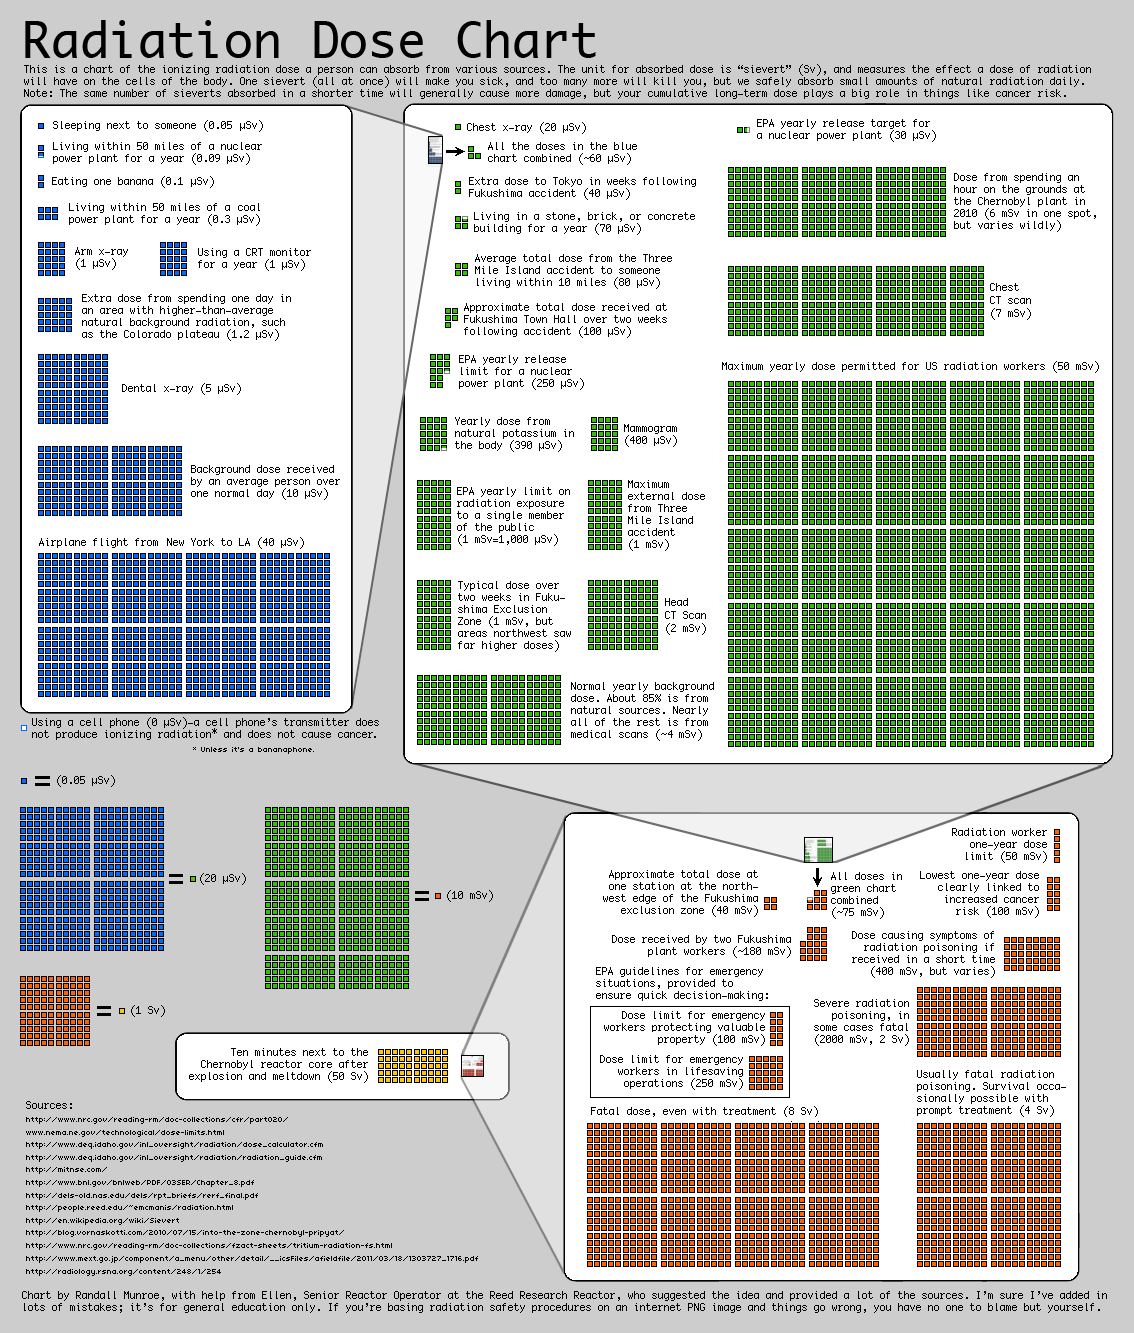 Radiation dose comparison from XKCD.com by Randall Munroe